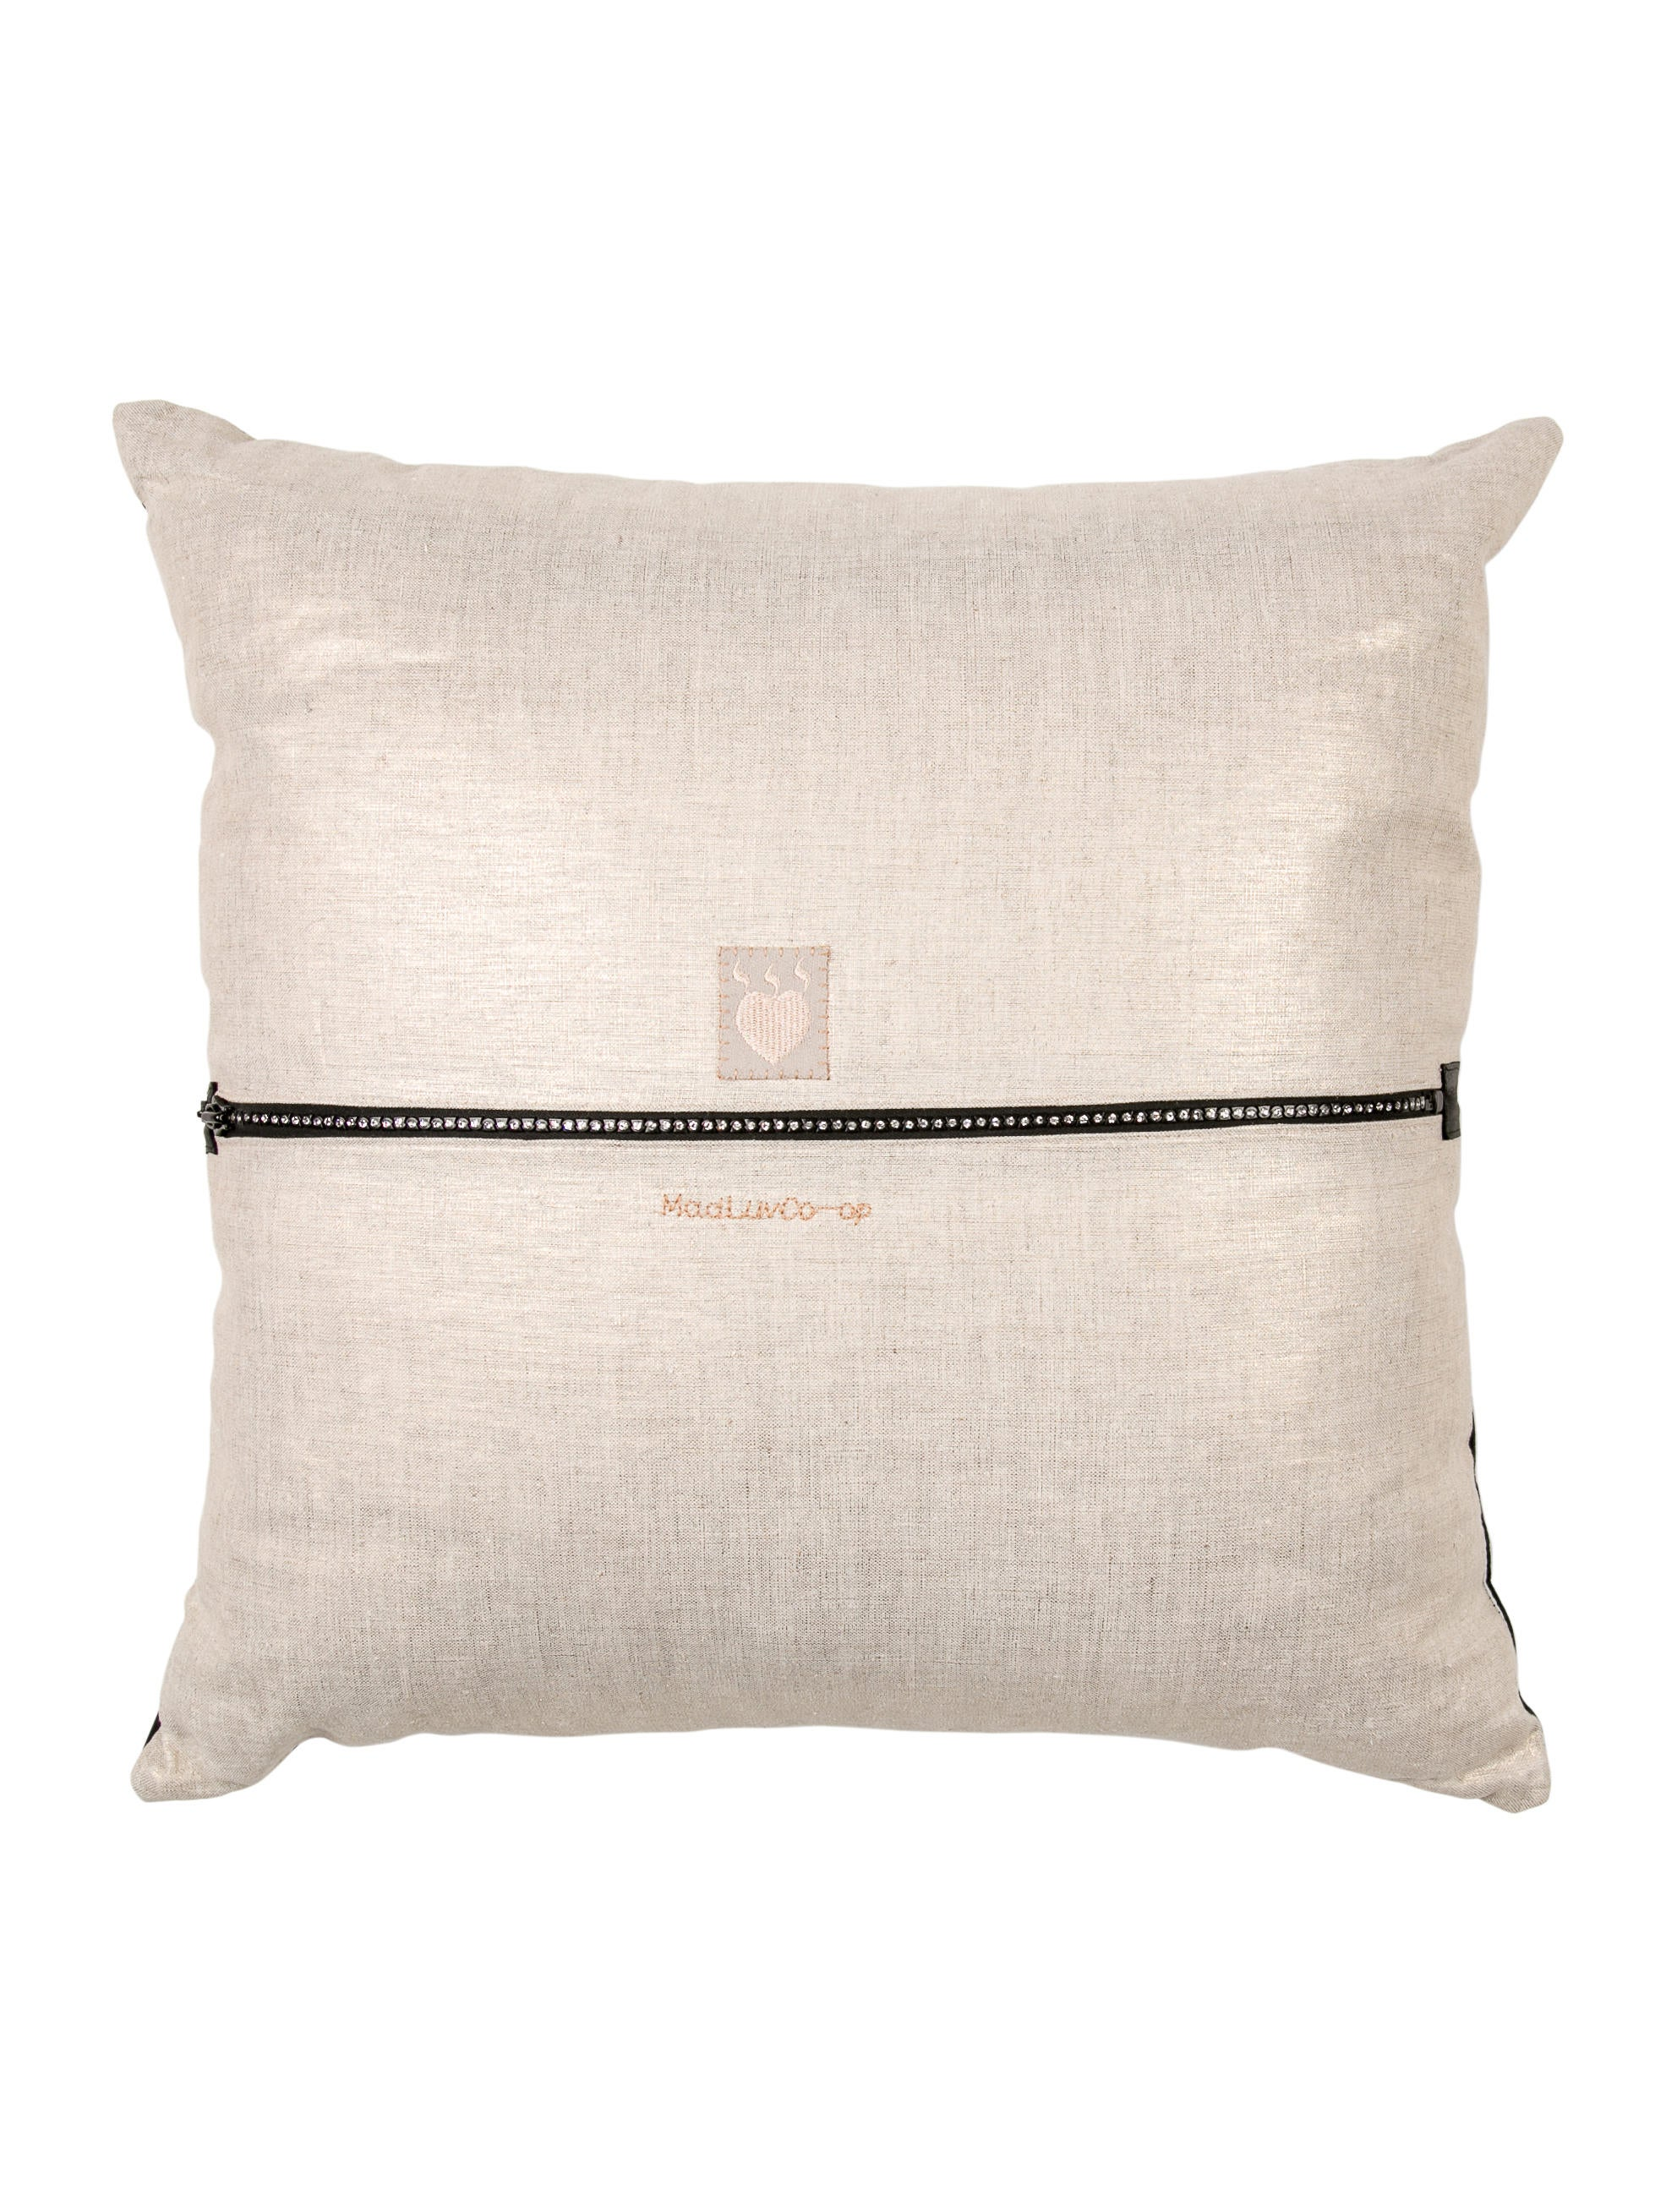 Throw Pillow Leather : Leather-Accented Throw Pillow - Bedding And Bath - PILLO20085 The RealReal